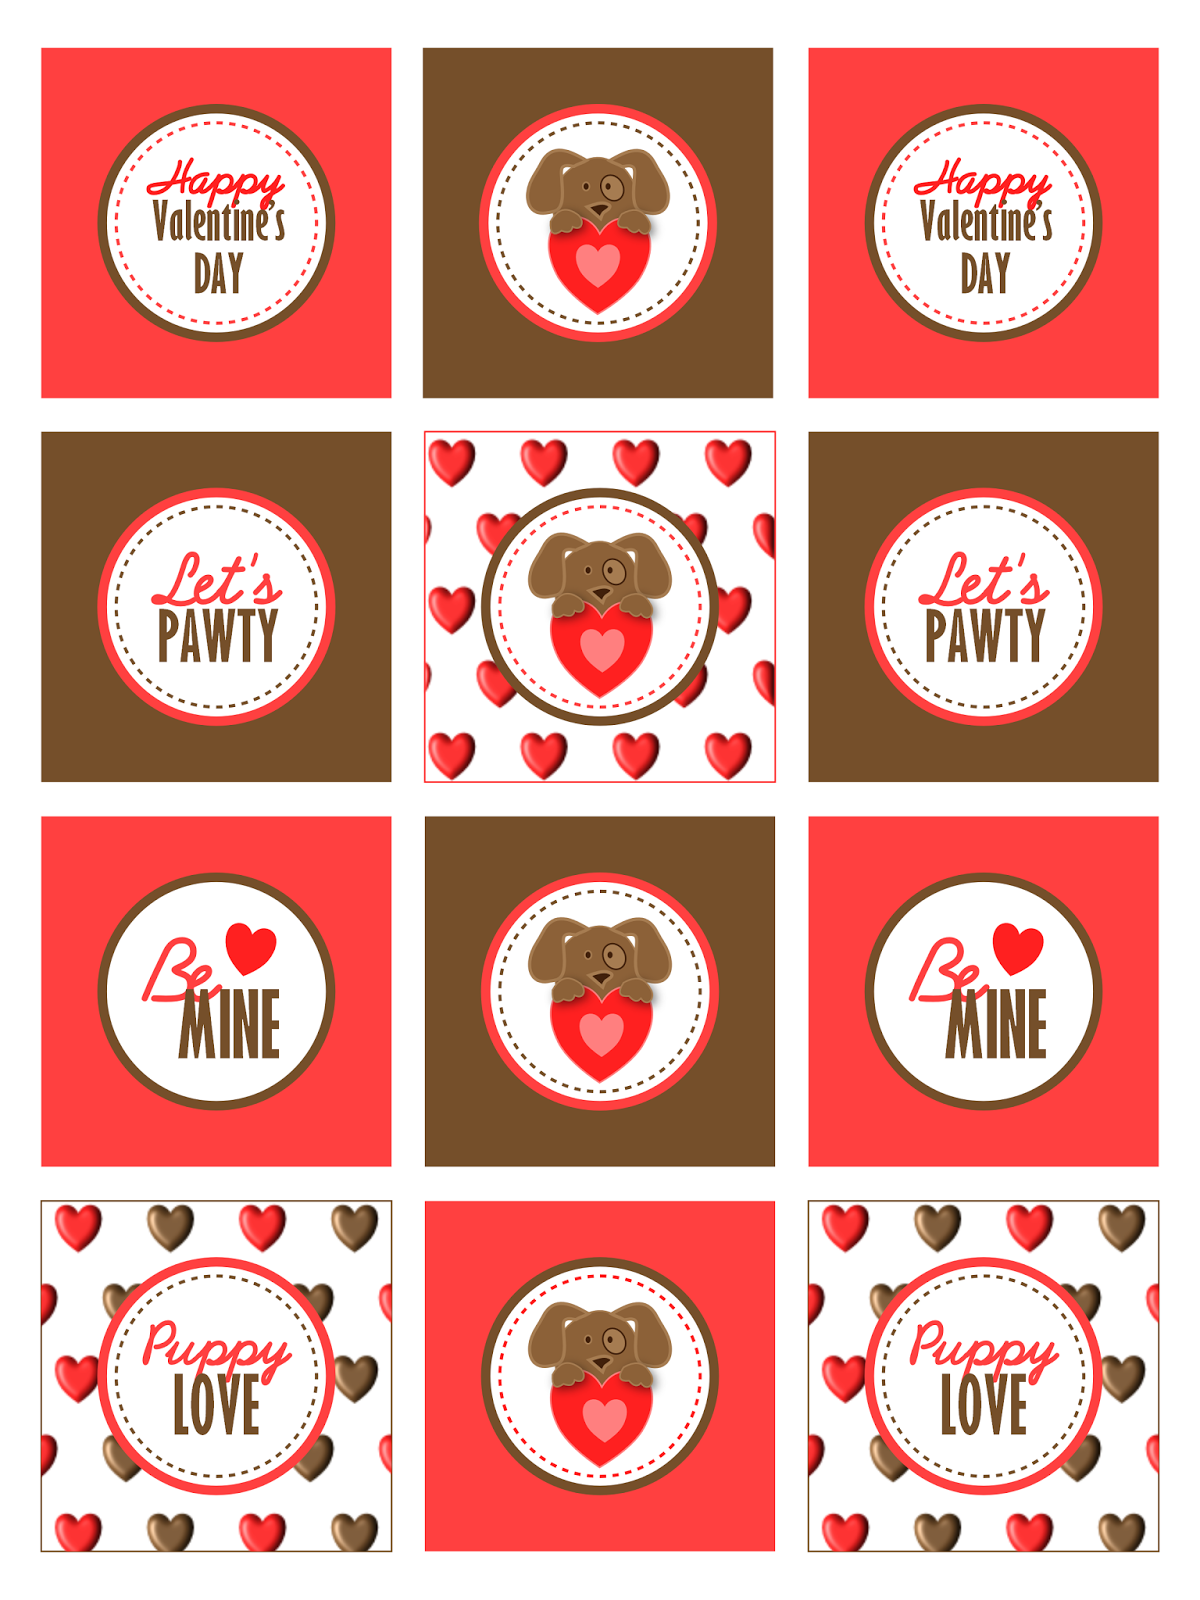 Free Printable Puppy Love Valentine's Day Party Kit - BirdsParty.com